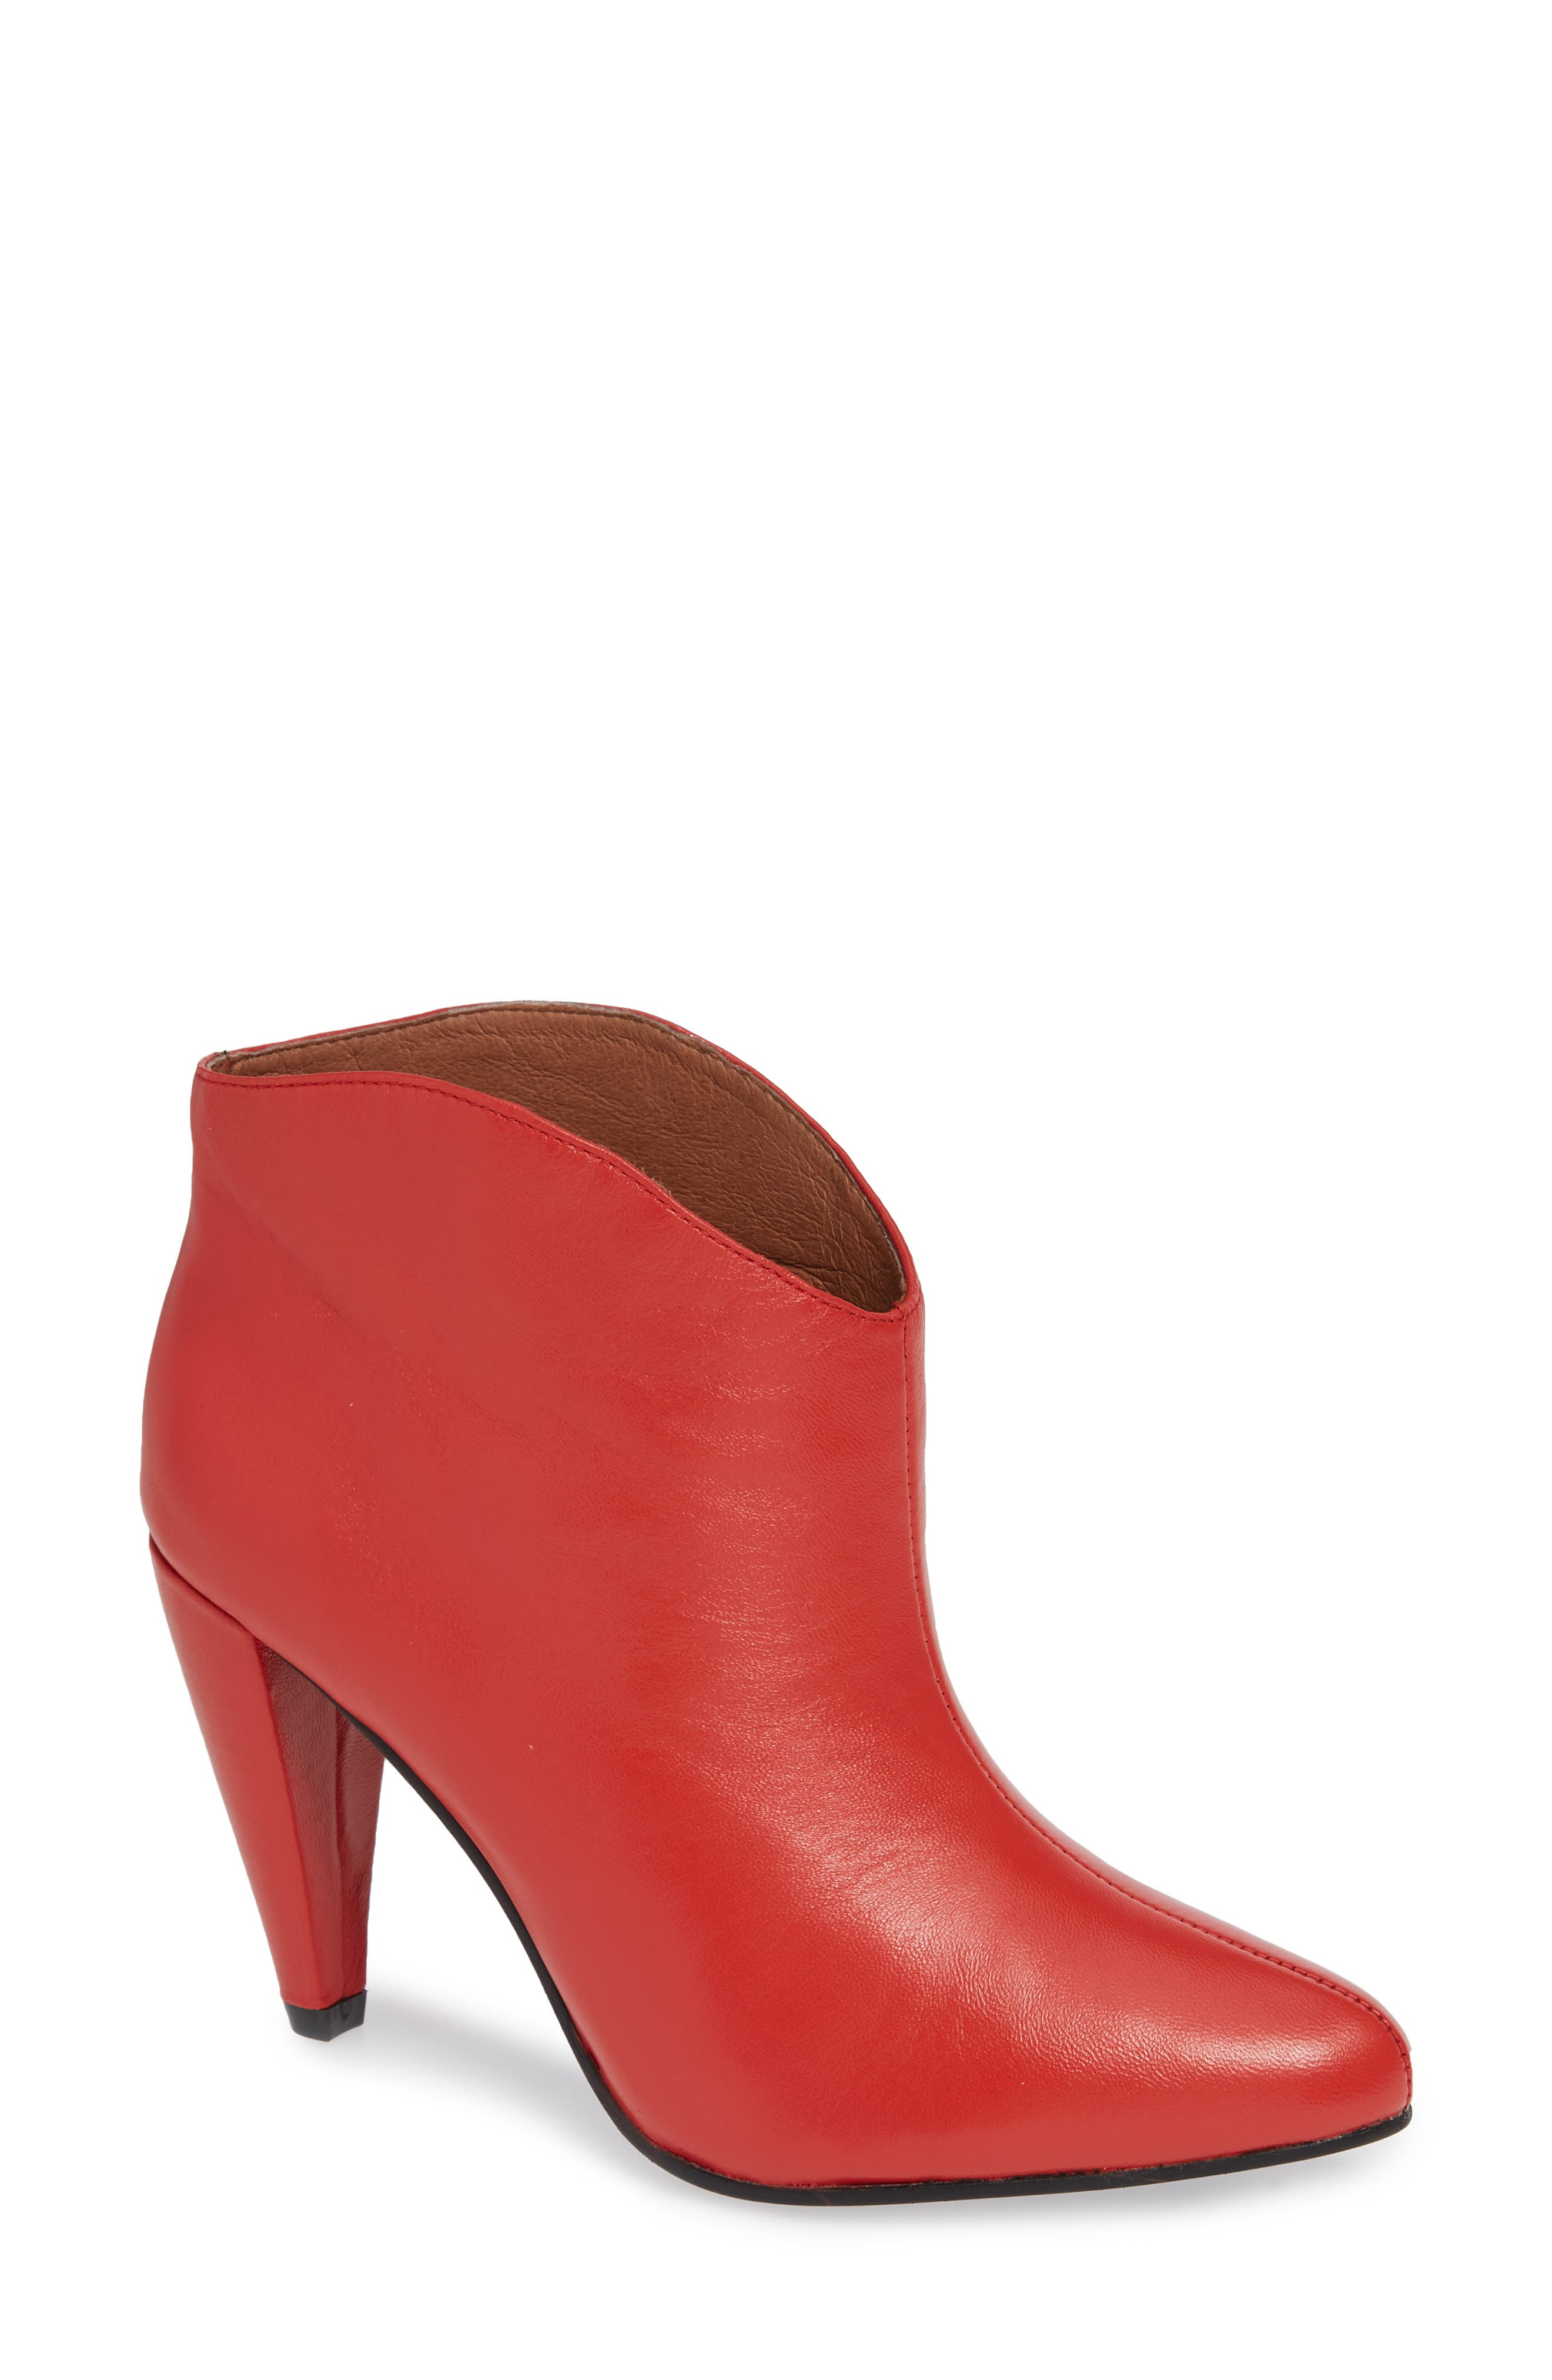 Jeffrey Campbell Furiosa Bootie, Red